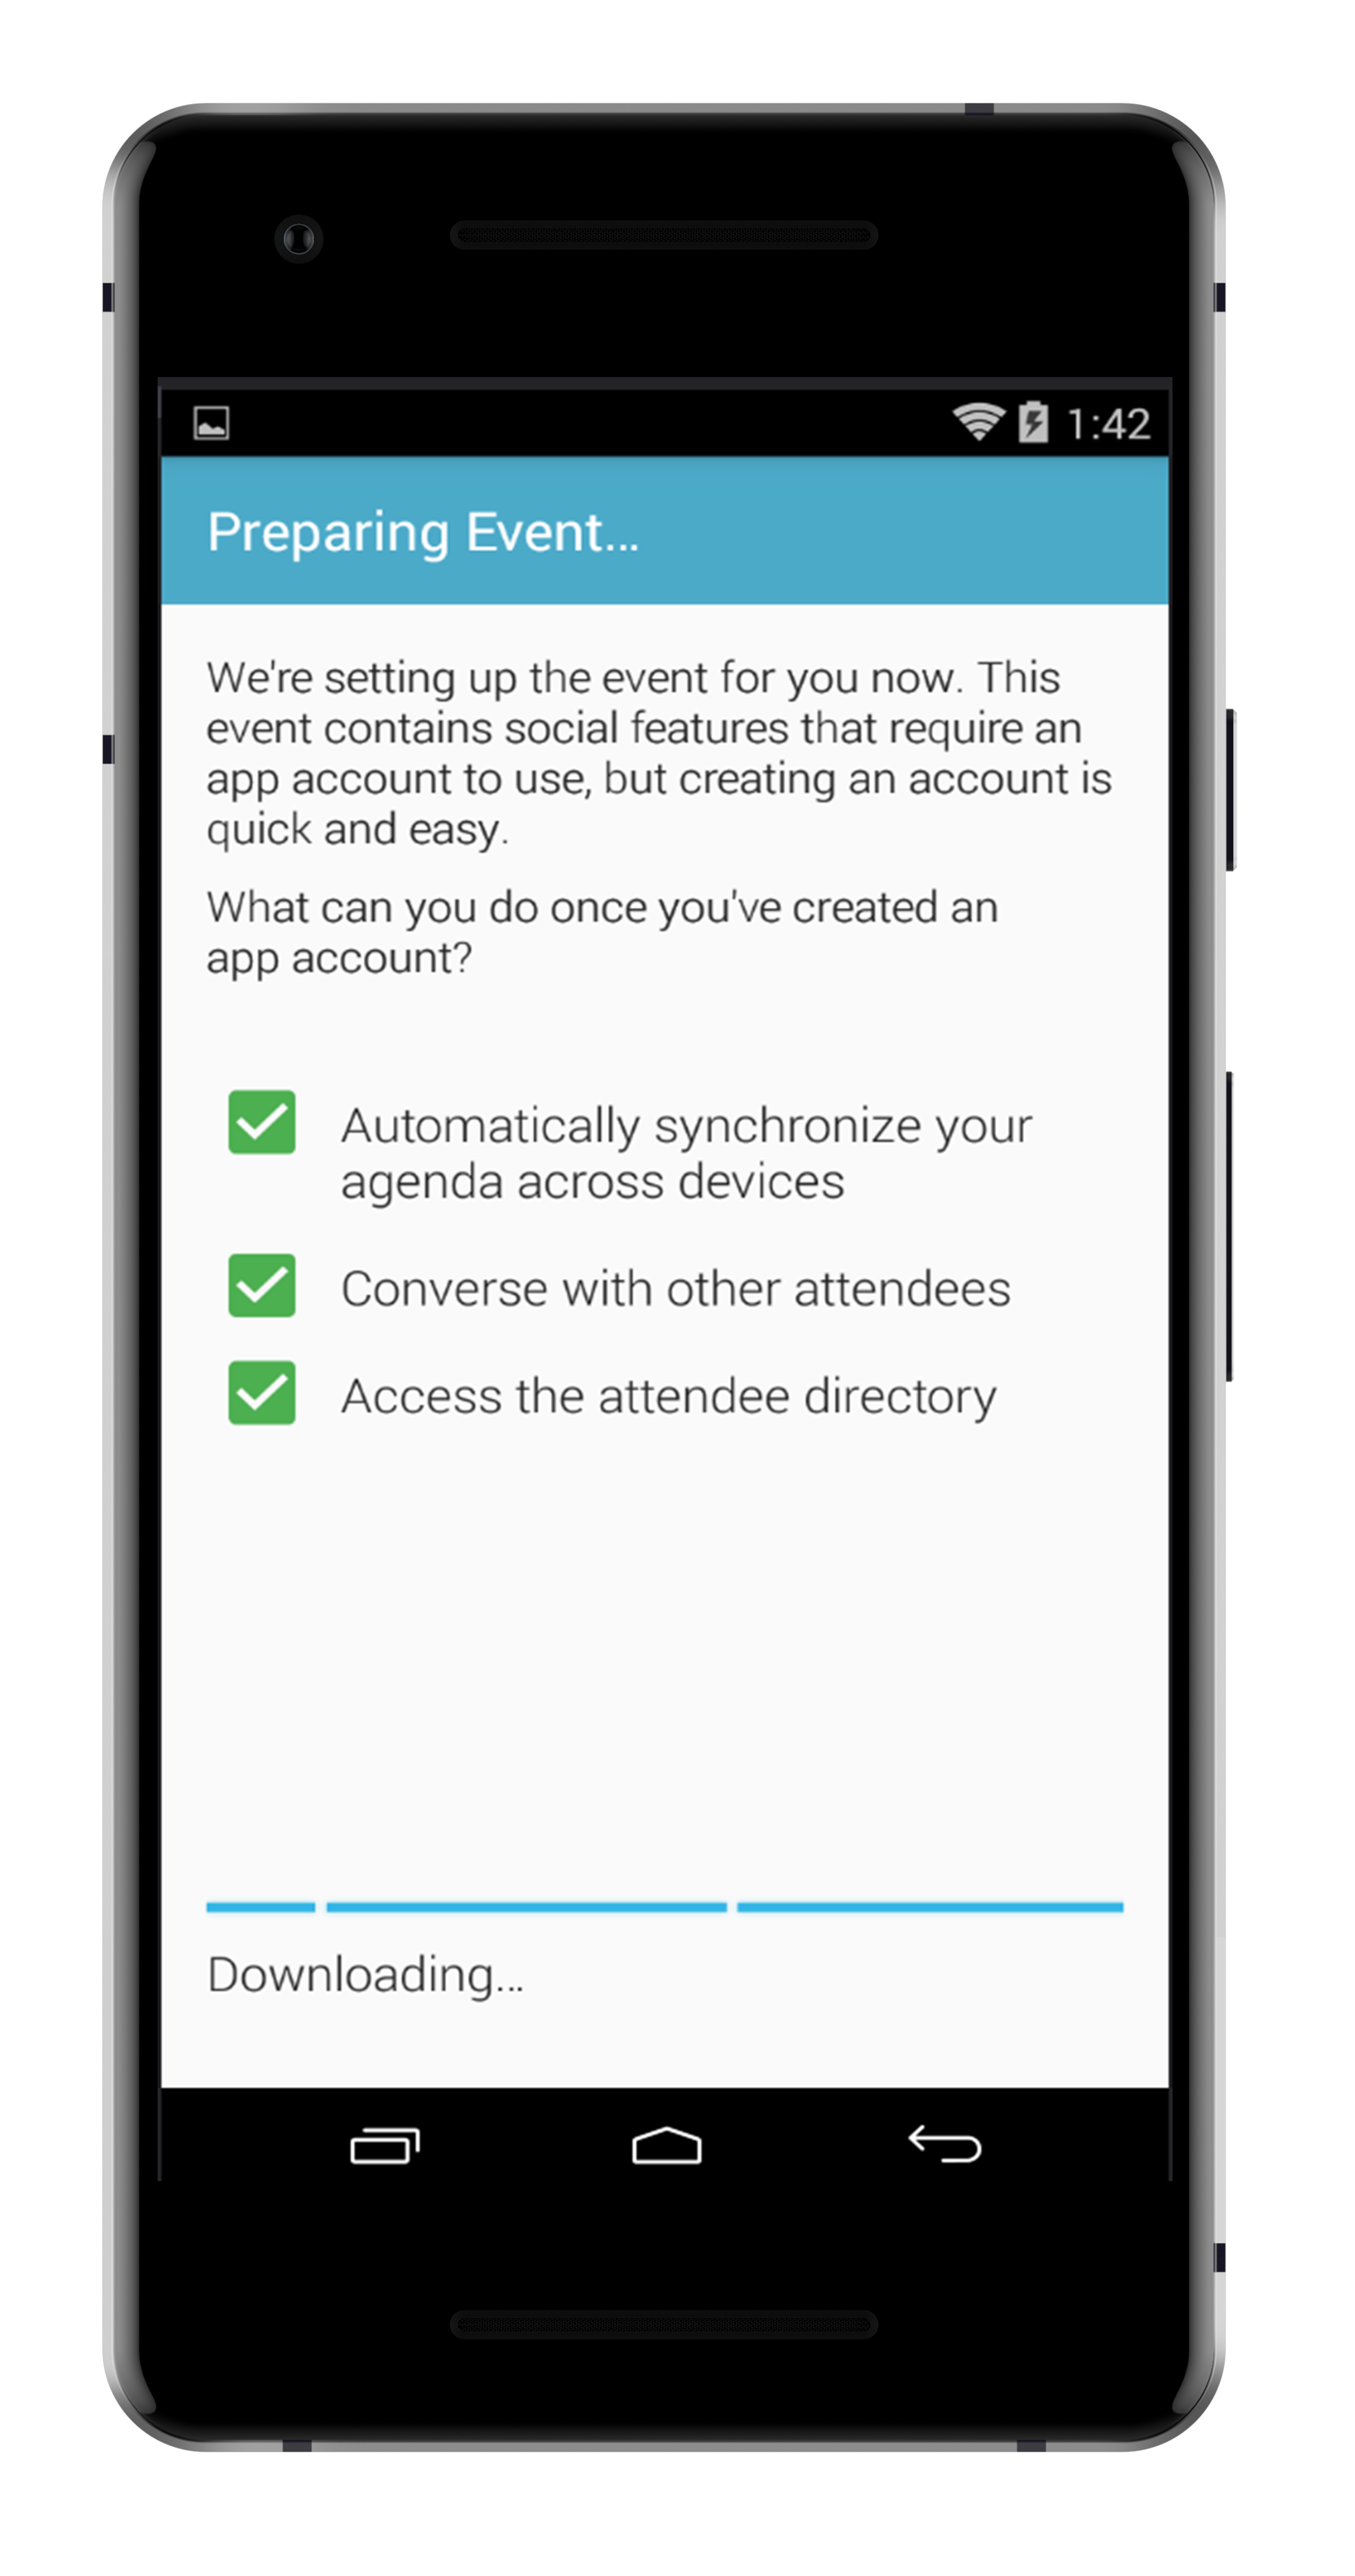 step 5. - YOU WILL NOW SEE THAT YOUR APP IS AUTOMATICALLY SYNCHRONIZNG YOUR DATA WITH THE APP, ALLOWING FOR NOTIFICATIONS, ACCESS TO THE DIRECTORY AND THE FULL APP EXPERIENCE.